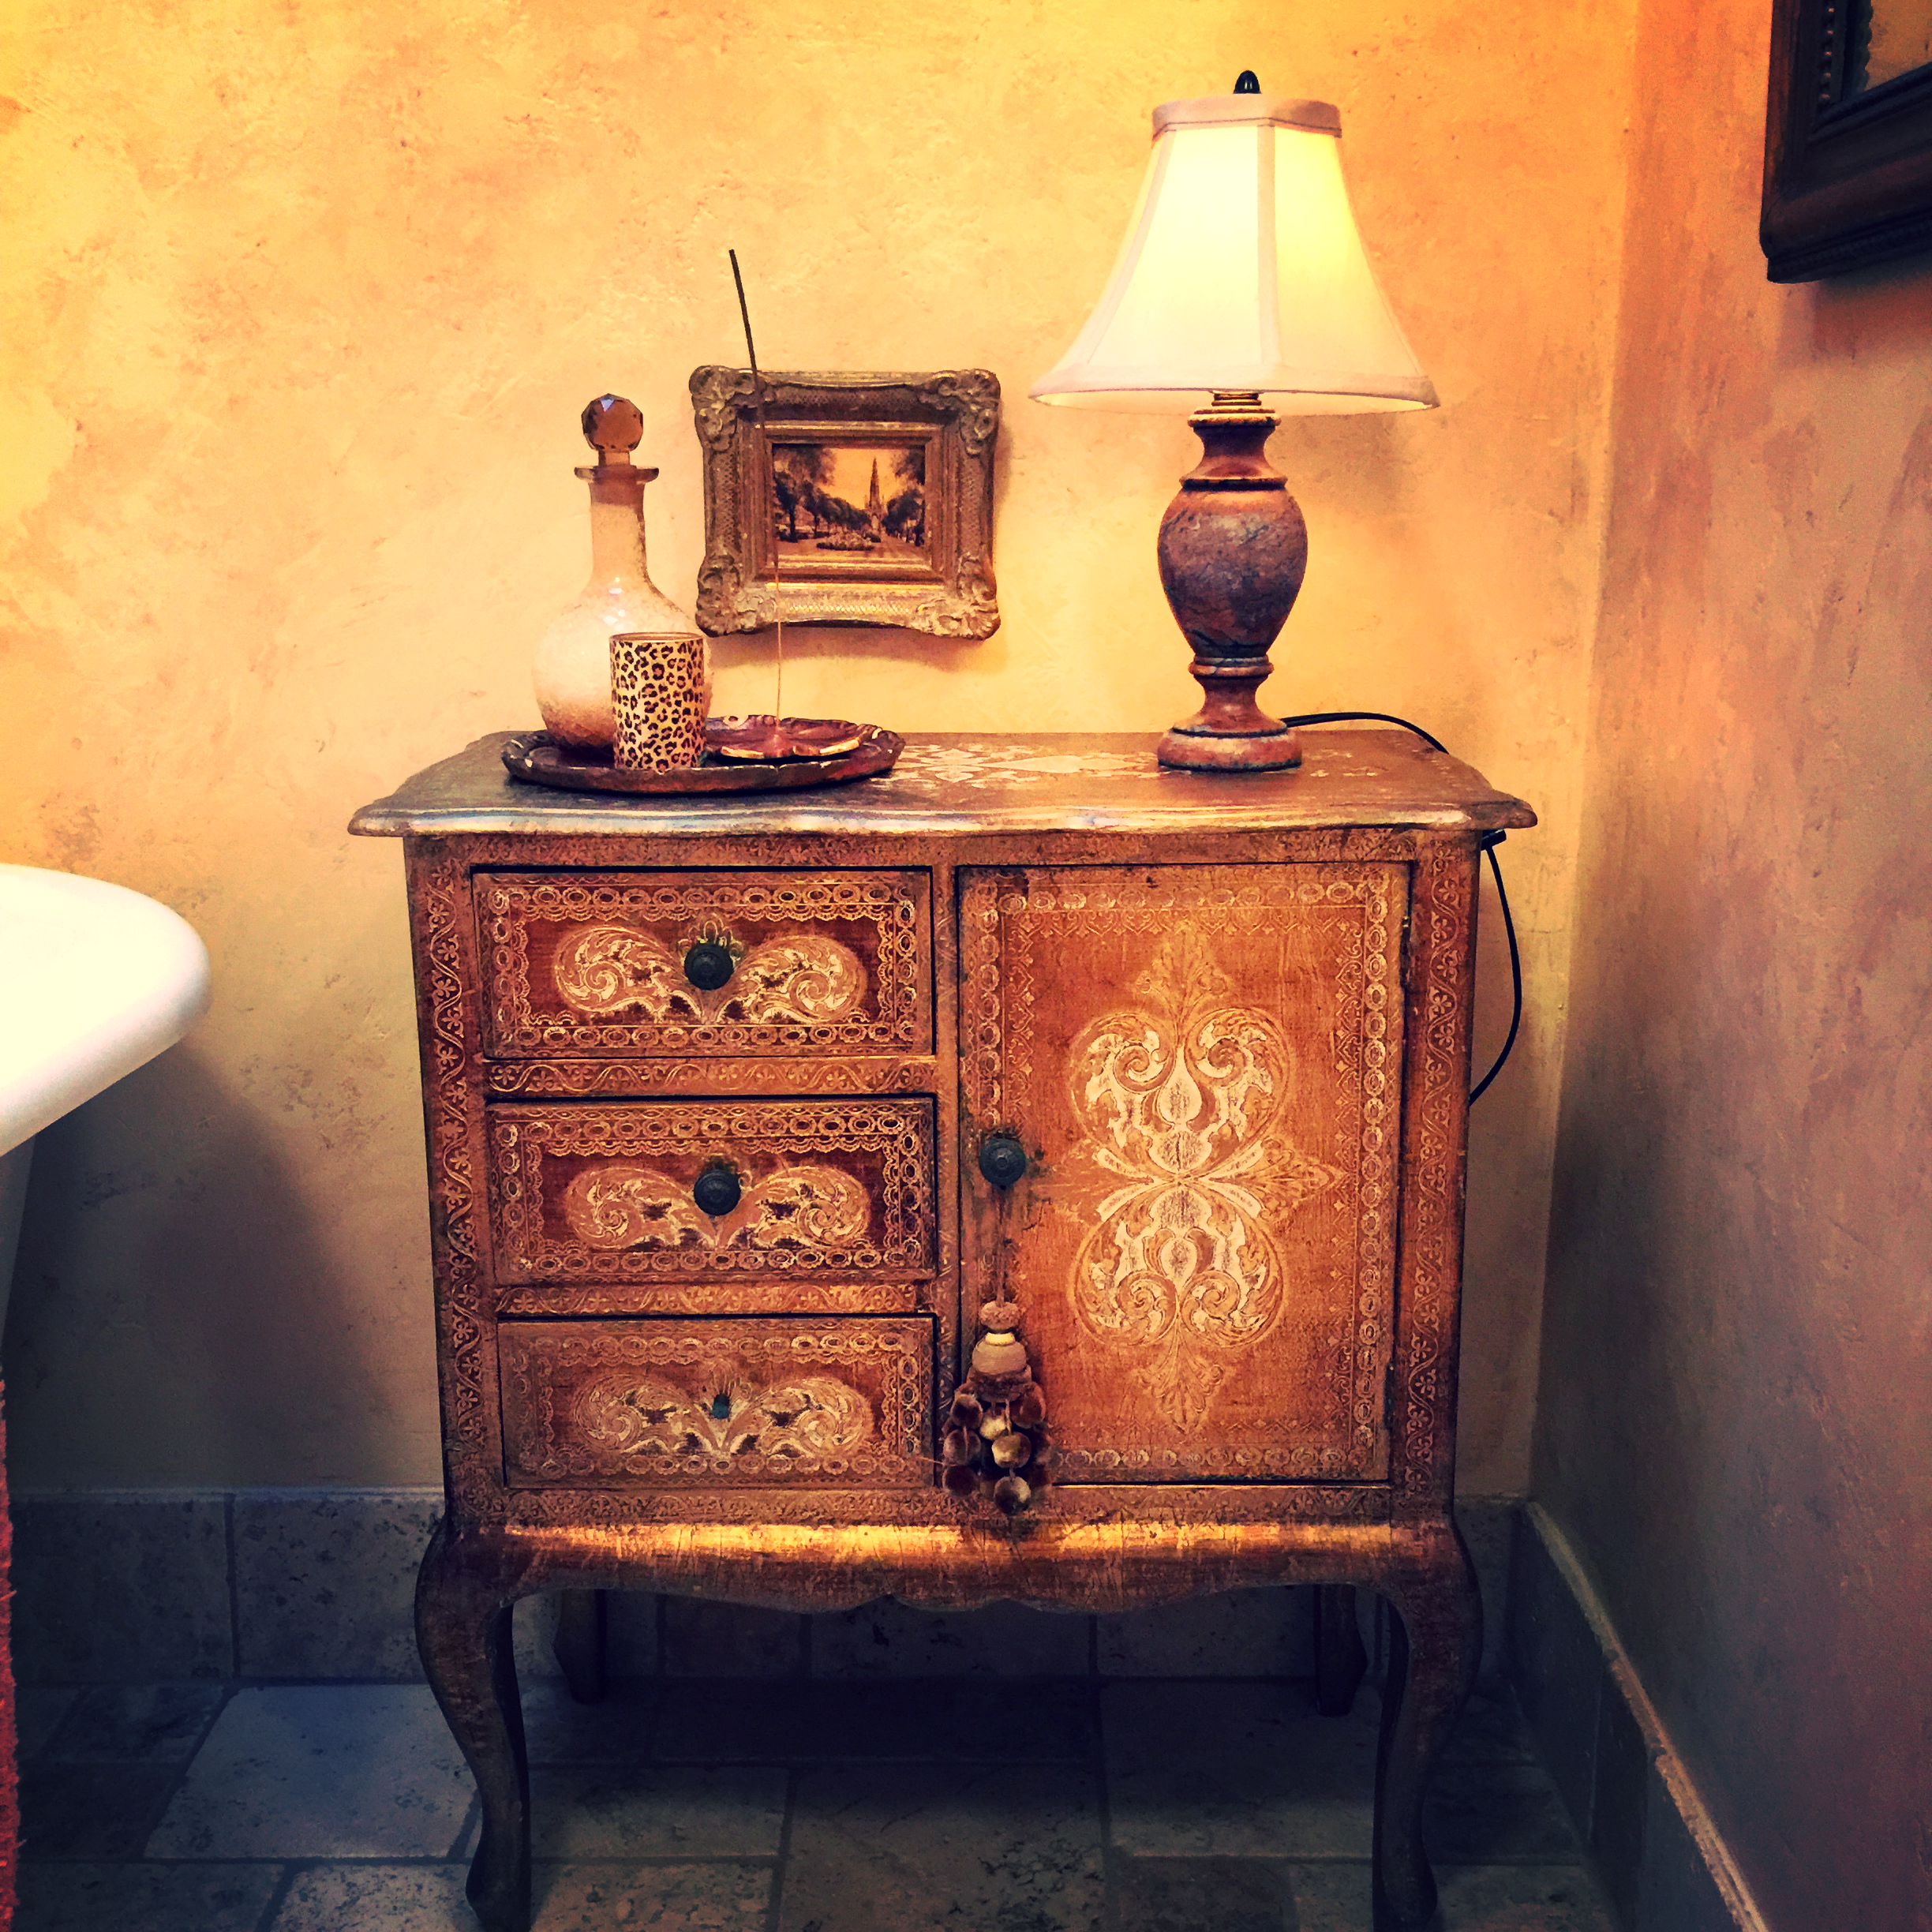 Perfect spot for an Italian gilt painted antique nightstand.....